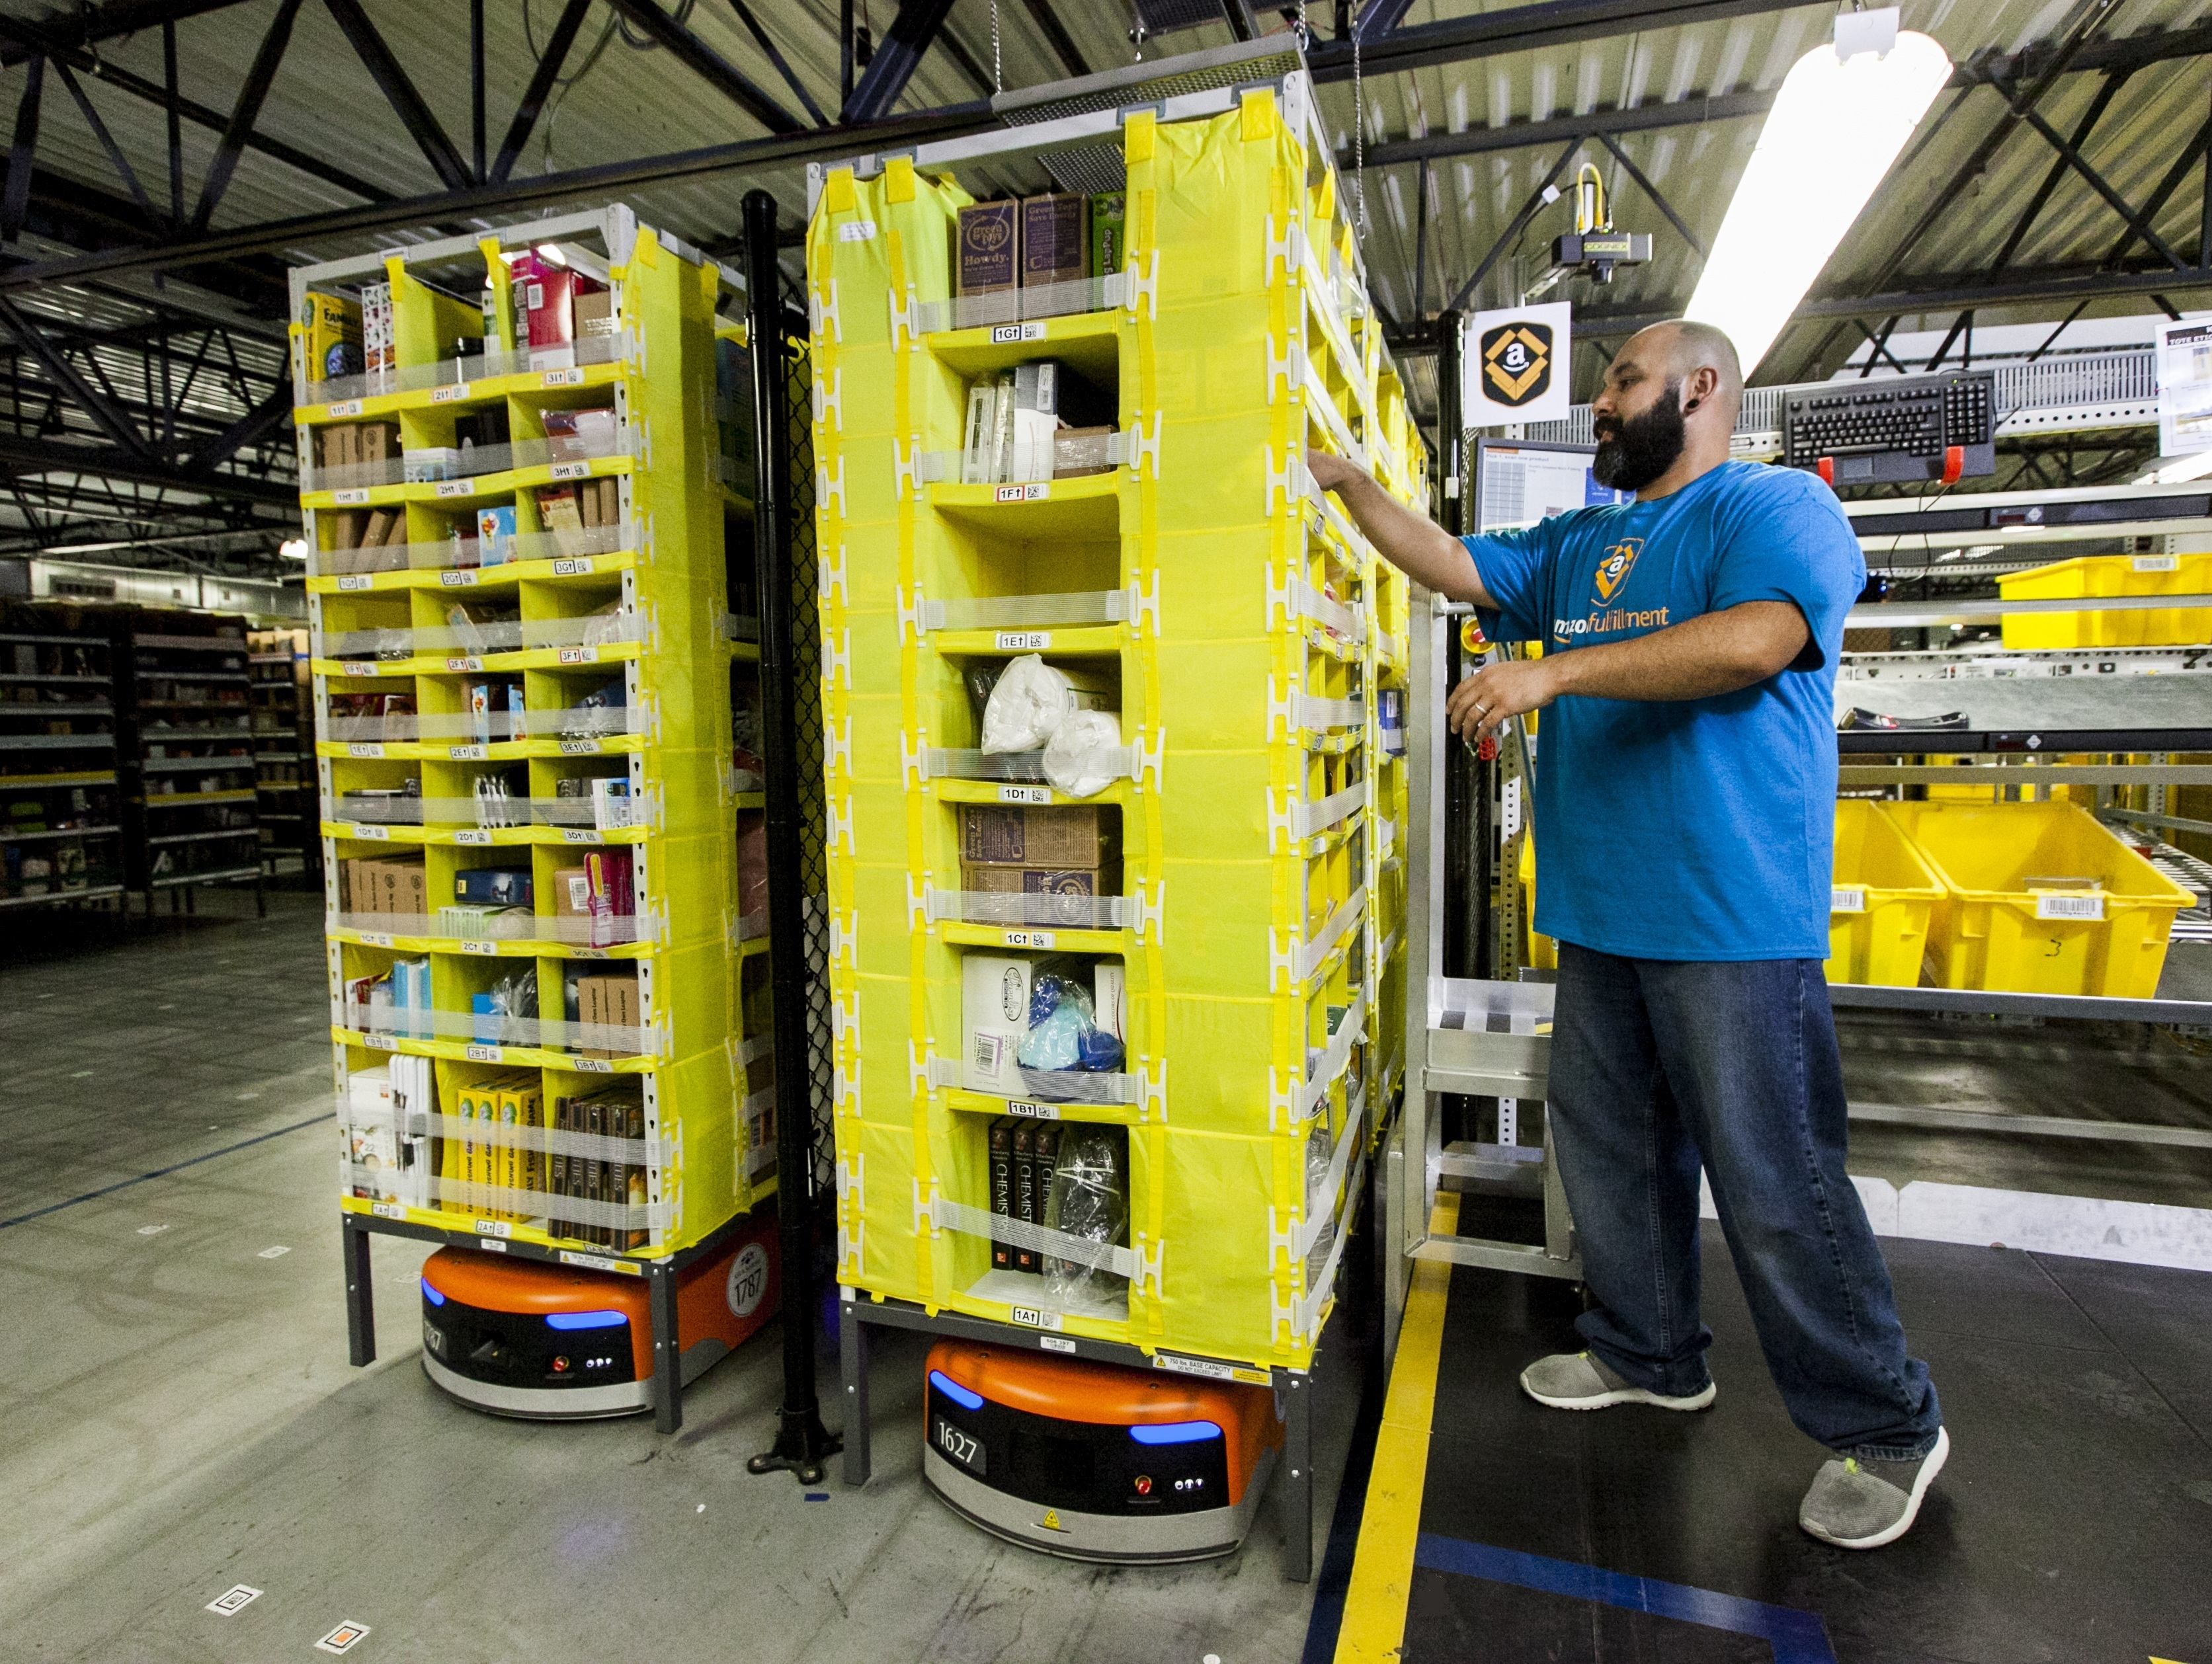 An Amazon employee picks items from a Kiva robot. (Photo: Business Wire)